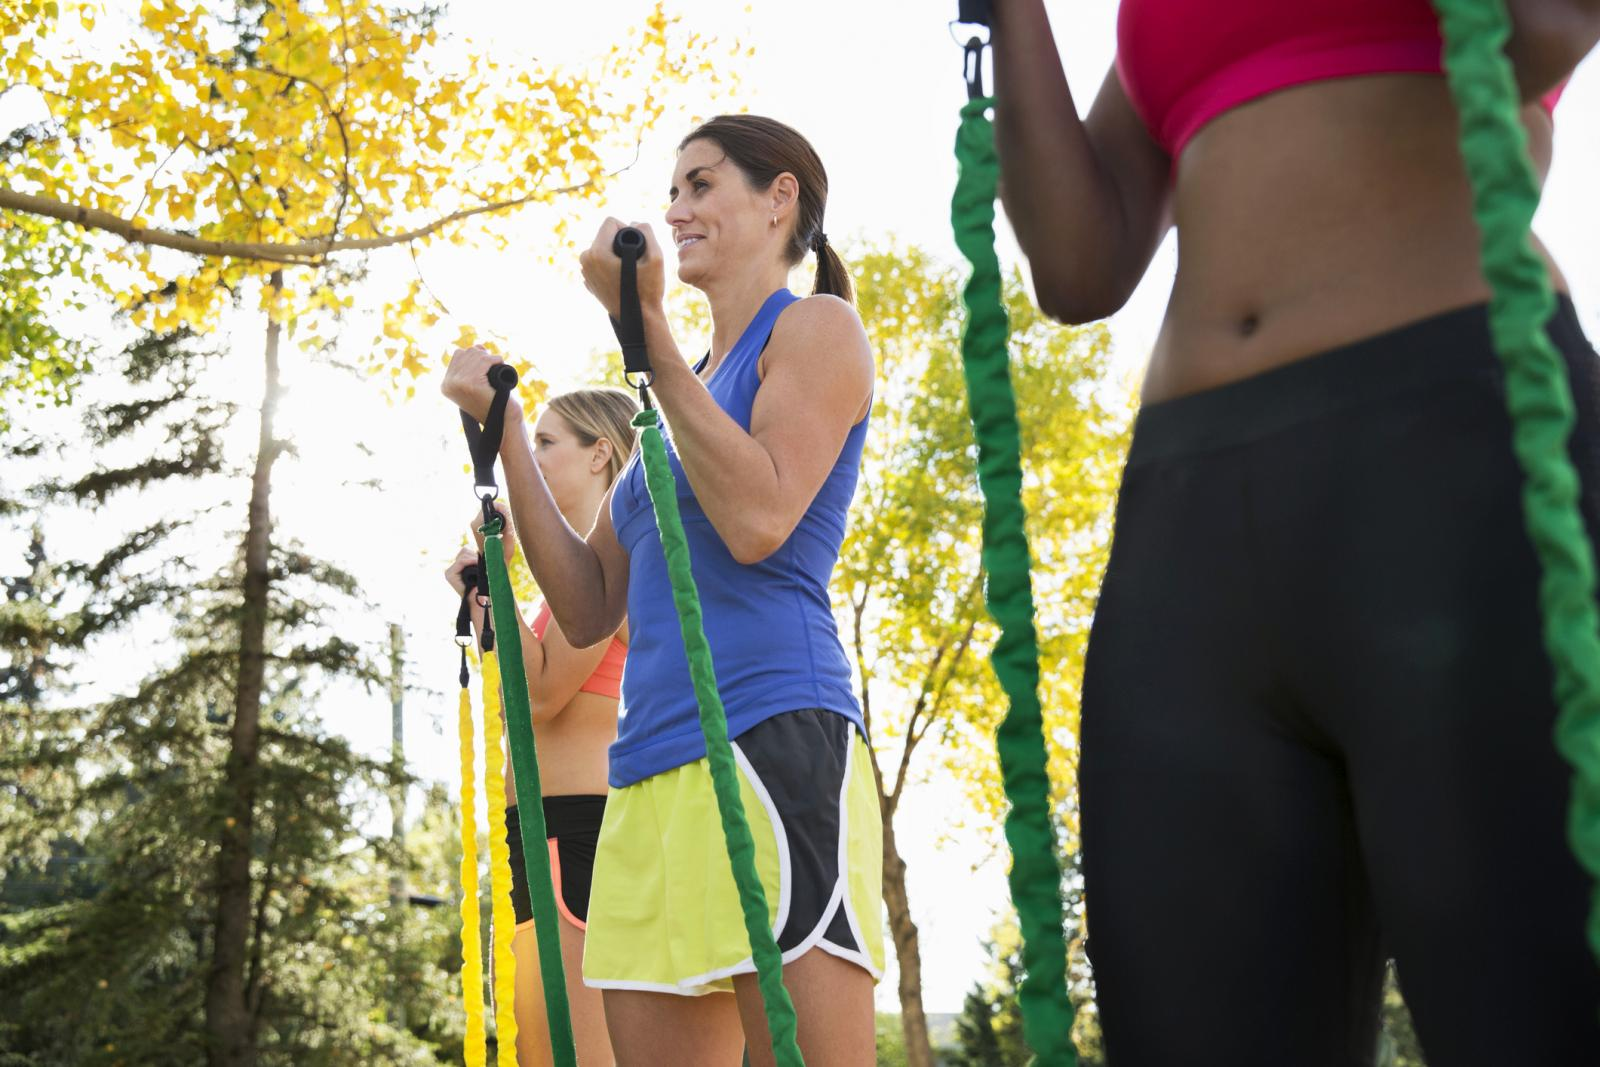 Women using resistance bands at outdoor fitness class